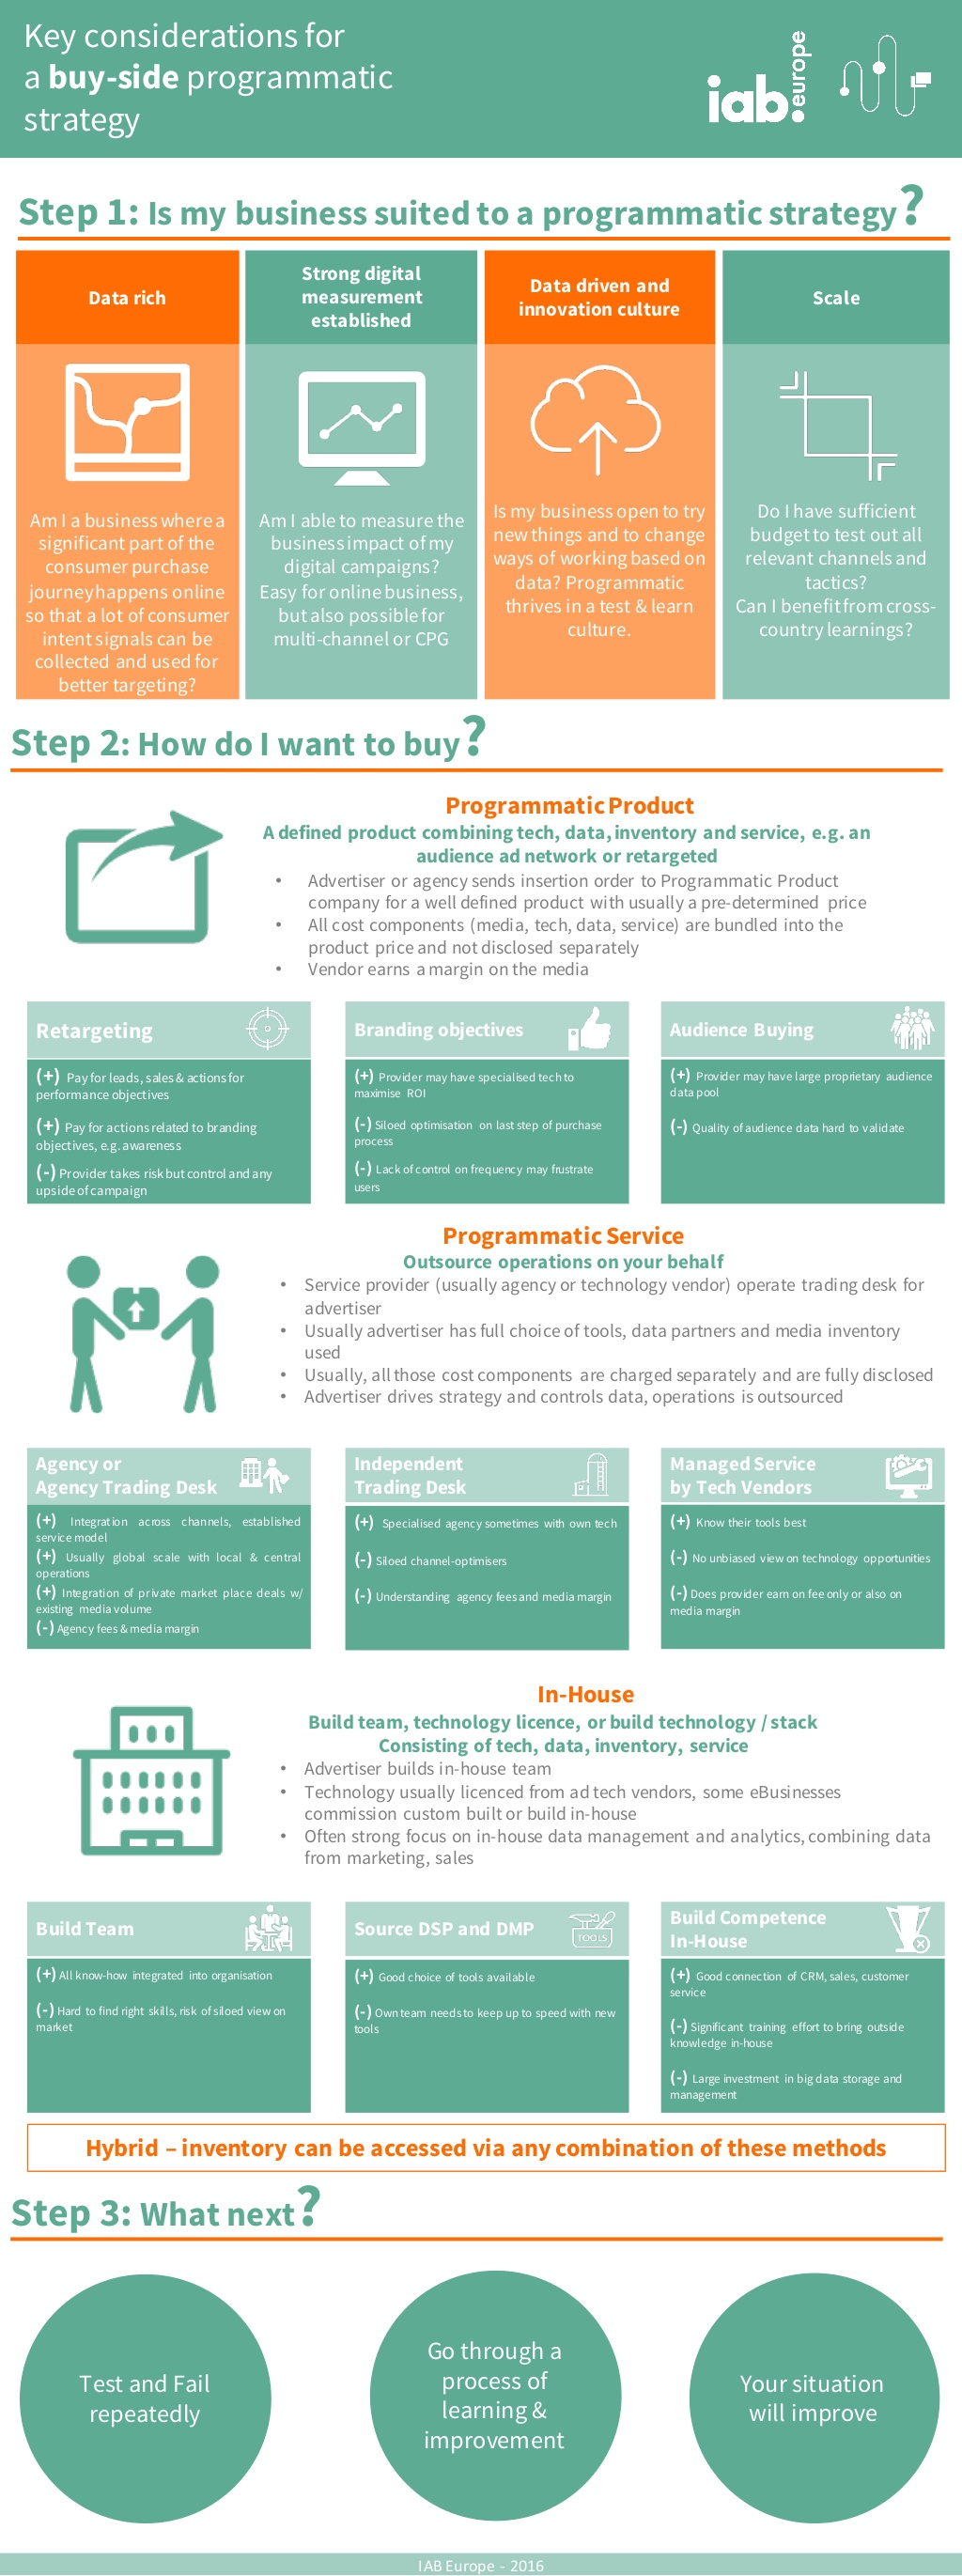 iab-europe-infographic-key-considerations-for-a-buyside-programmatic-strategy-1-1024